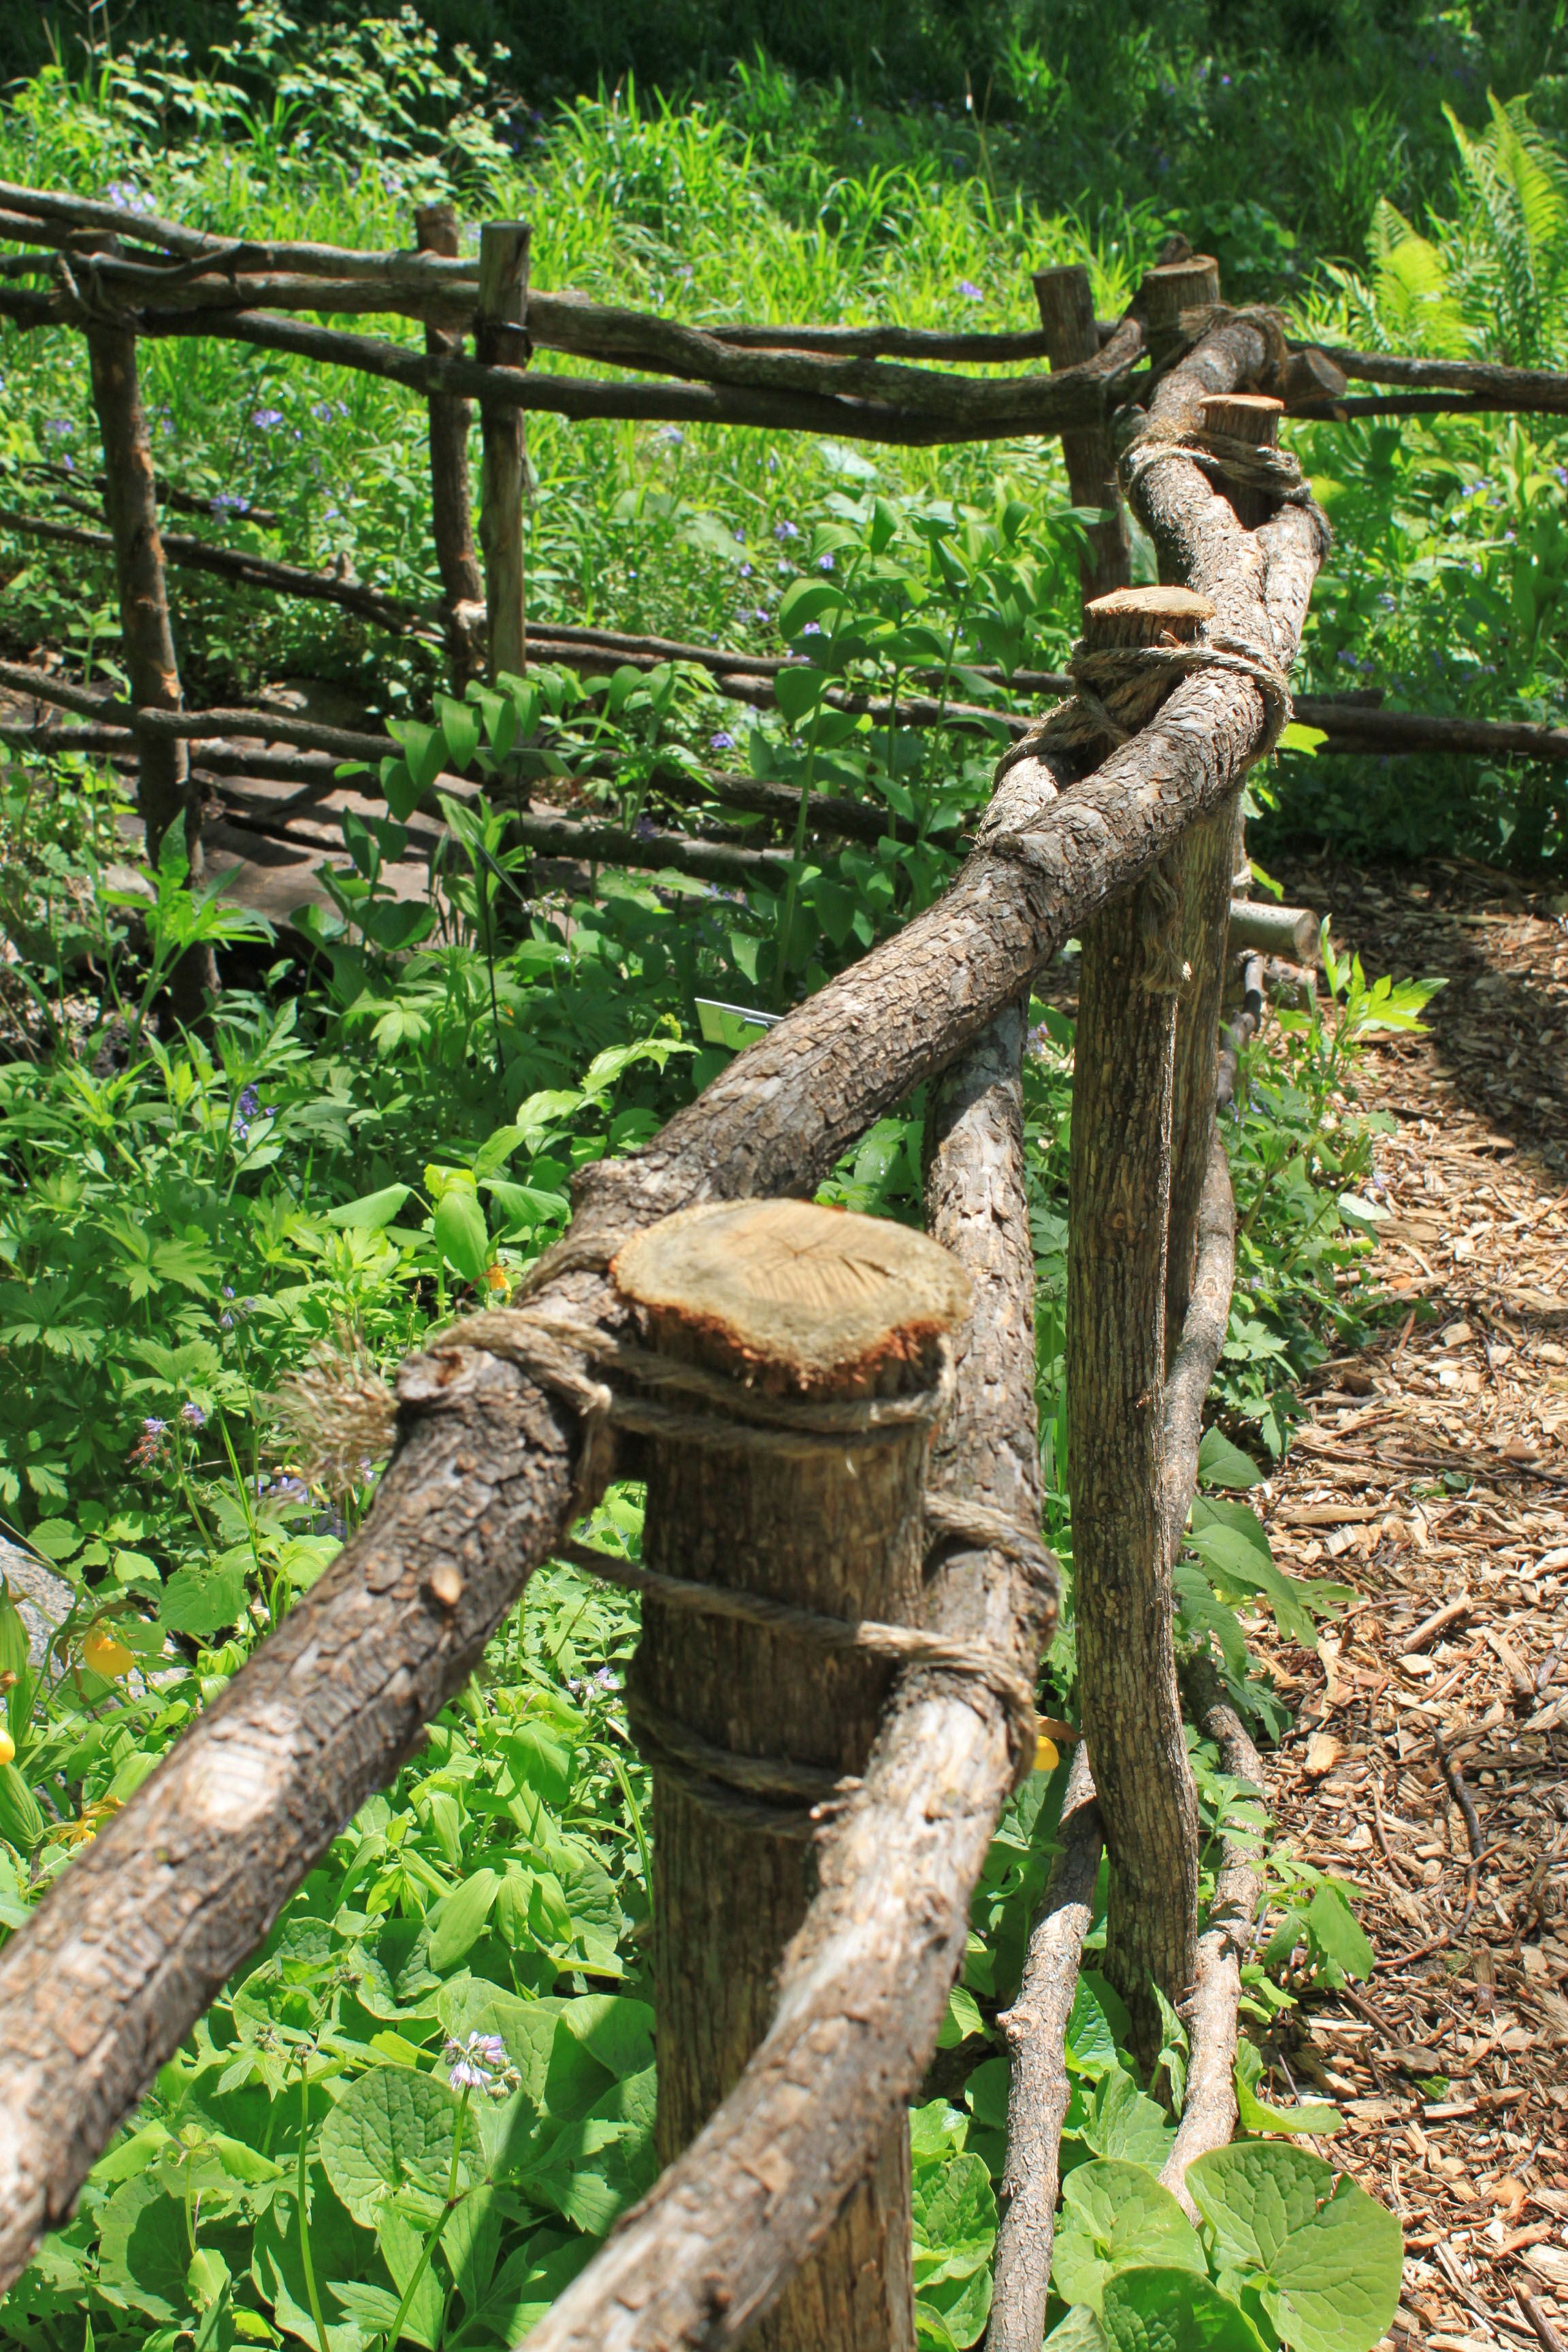 Old rustic fence our garden is surrounded by something similar one way of lashing together a rustic garden fence baanklon Image collections